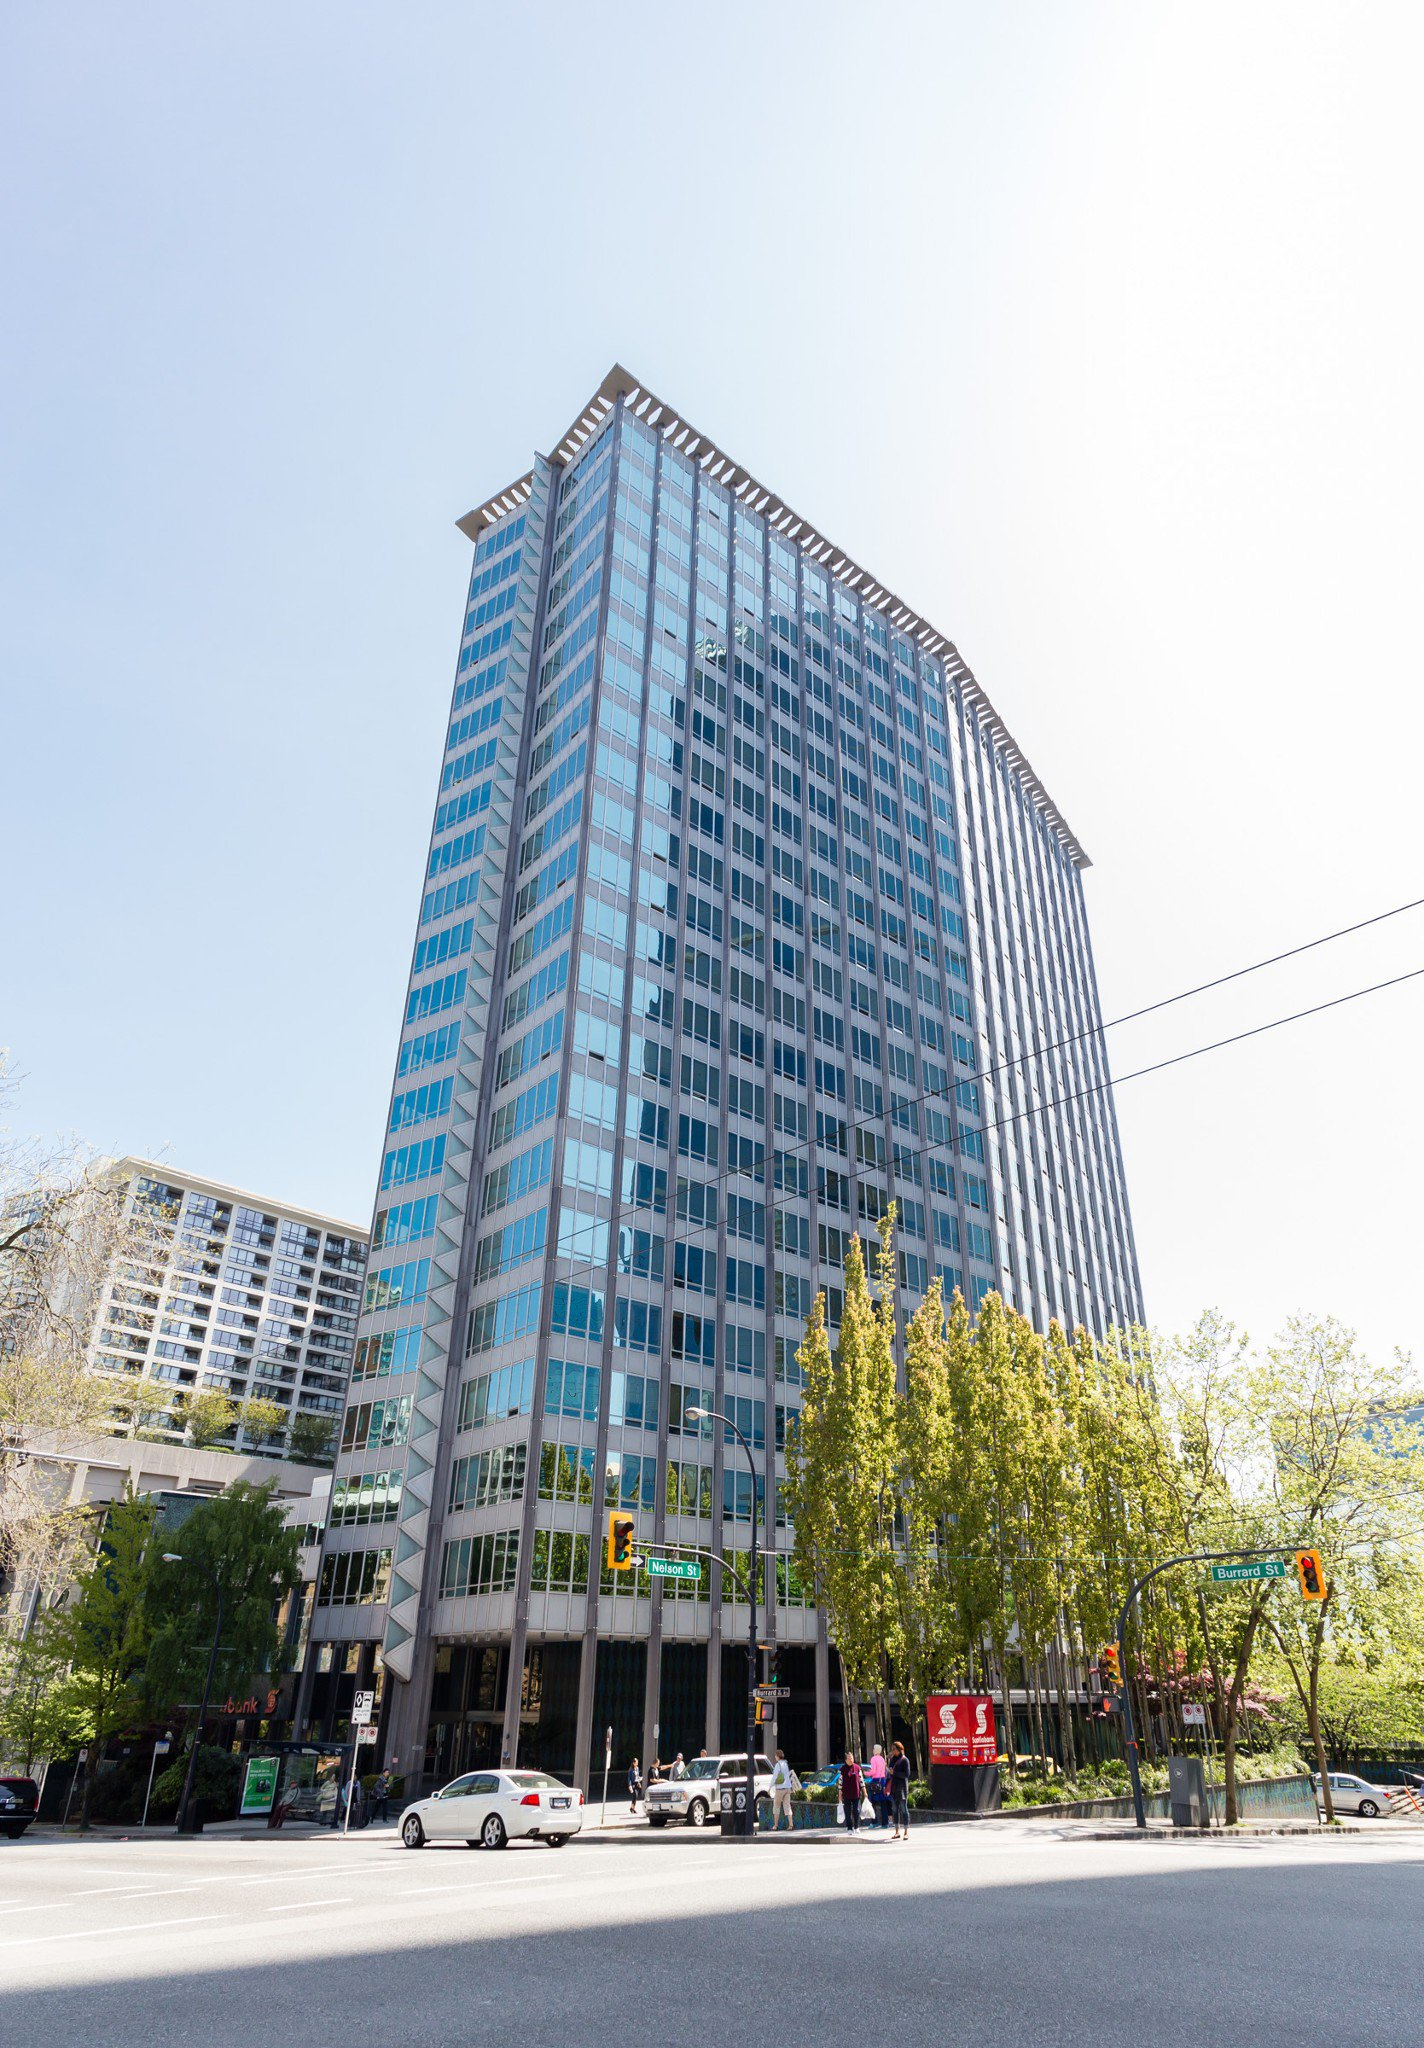 Main Photo: 242 - 970 Burrard St in Vancouver: Downtown VW Office for sale (Vancouver West)  : MLS®# C8024846